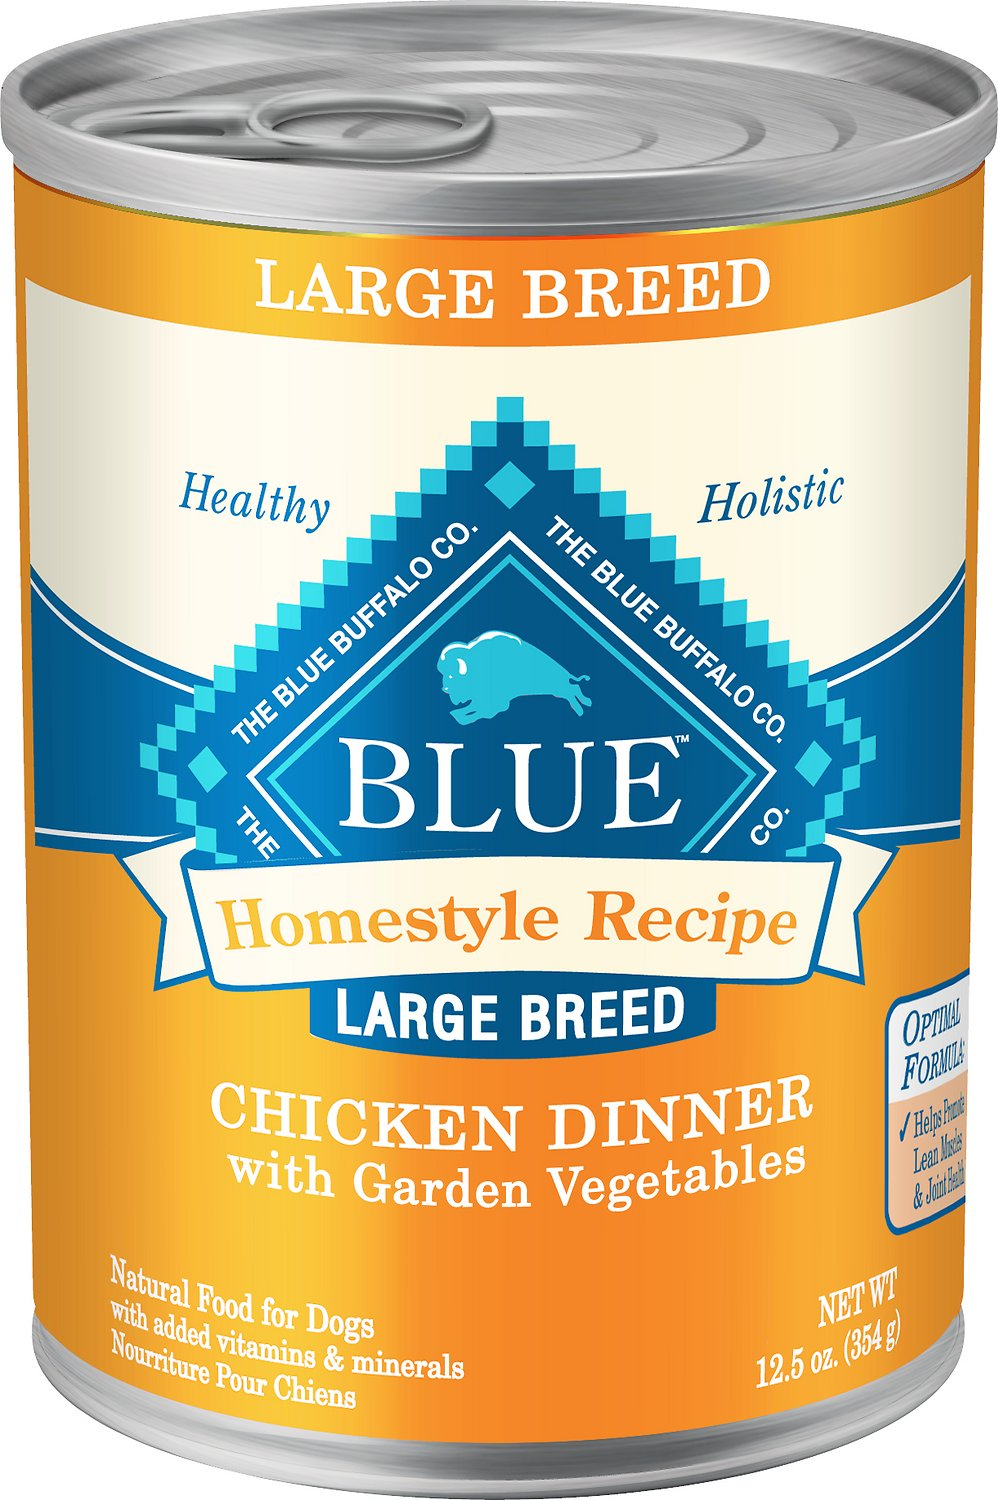 Blue Buffalo Large Breed Chicken Dinner 12.5OZ 12 Count Case